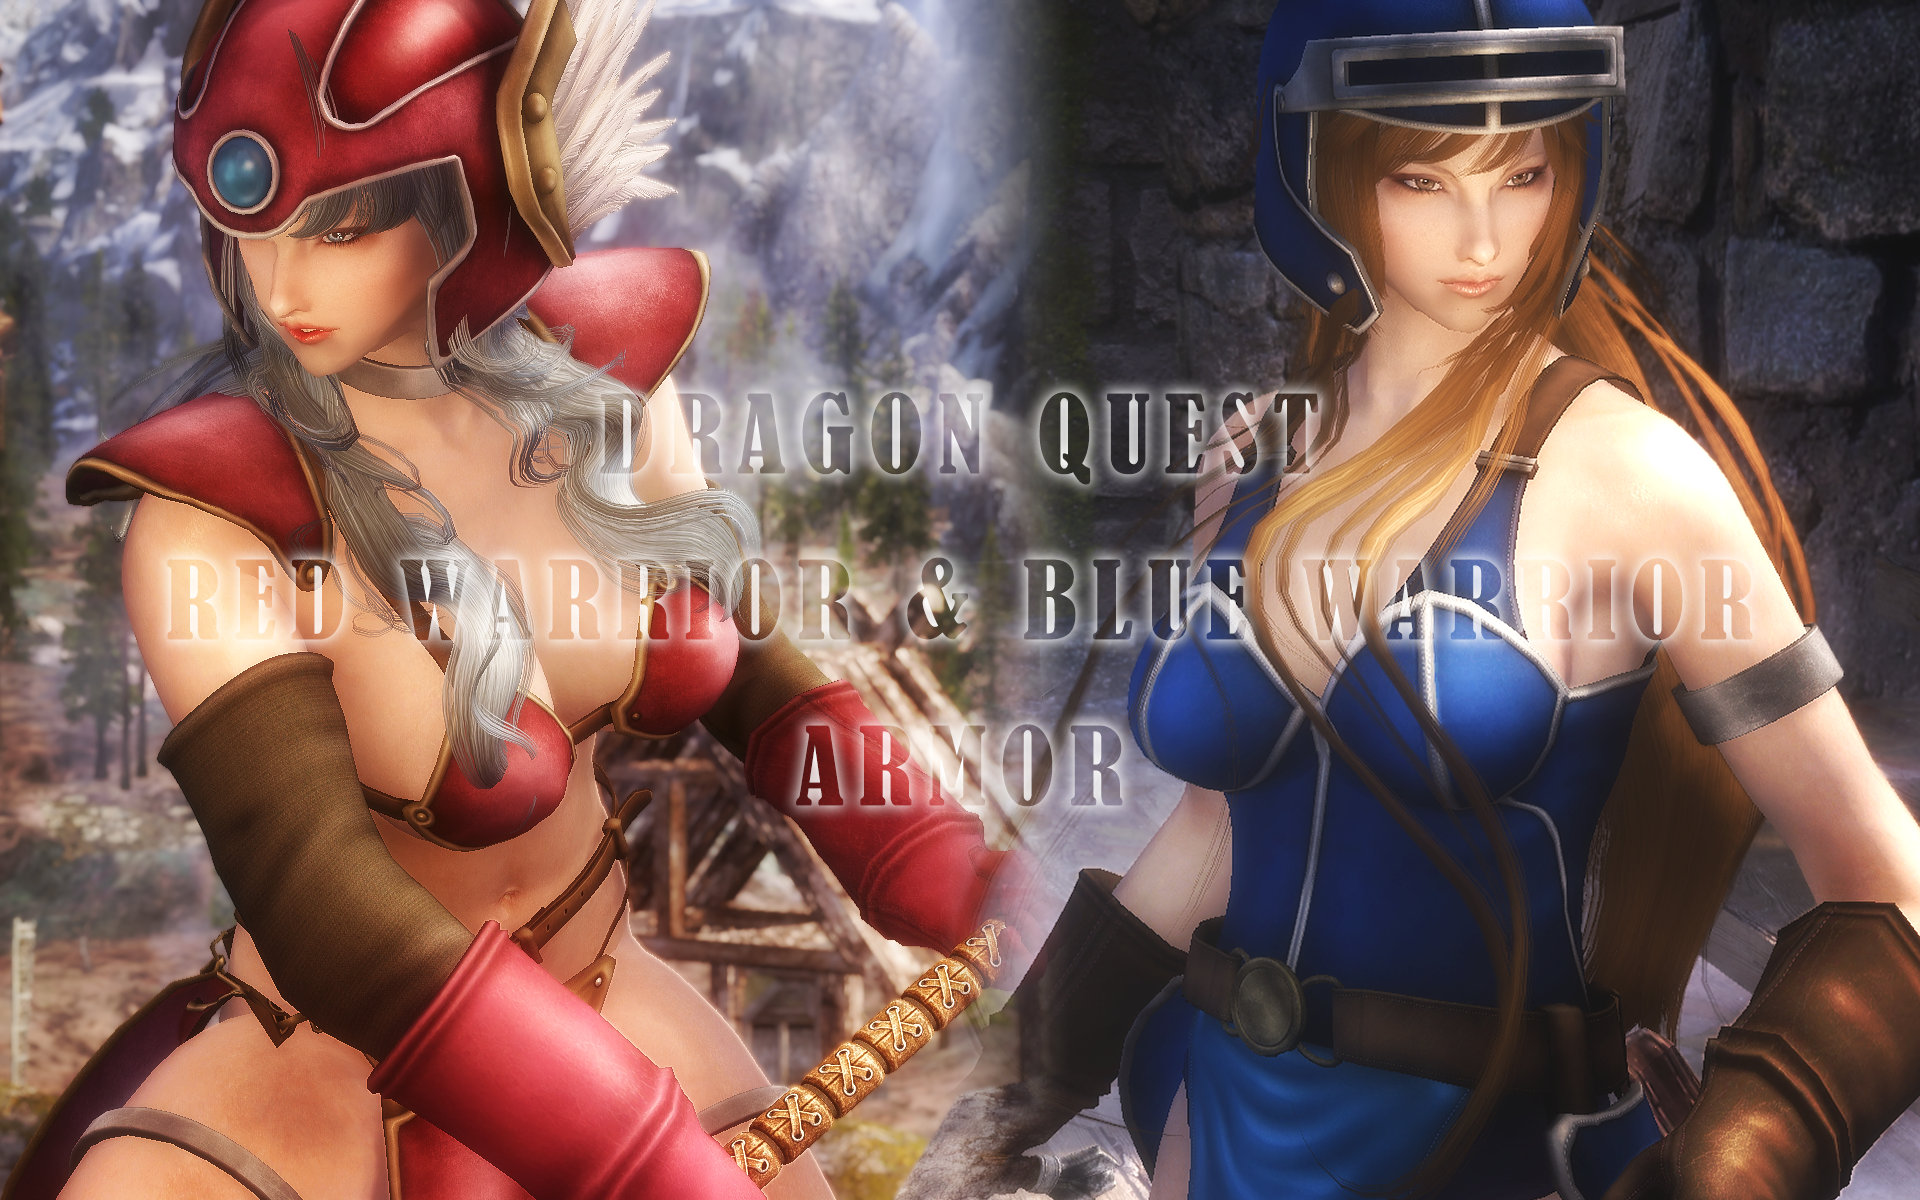 Dragon Quest Red Warrior & Blue Warrior Armor